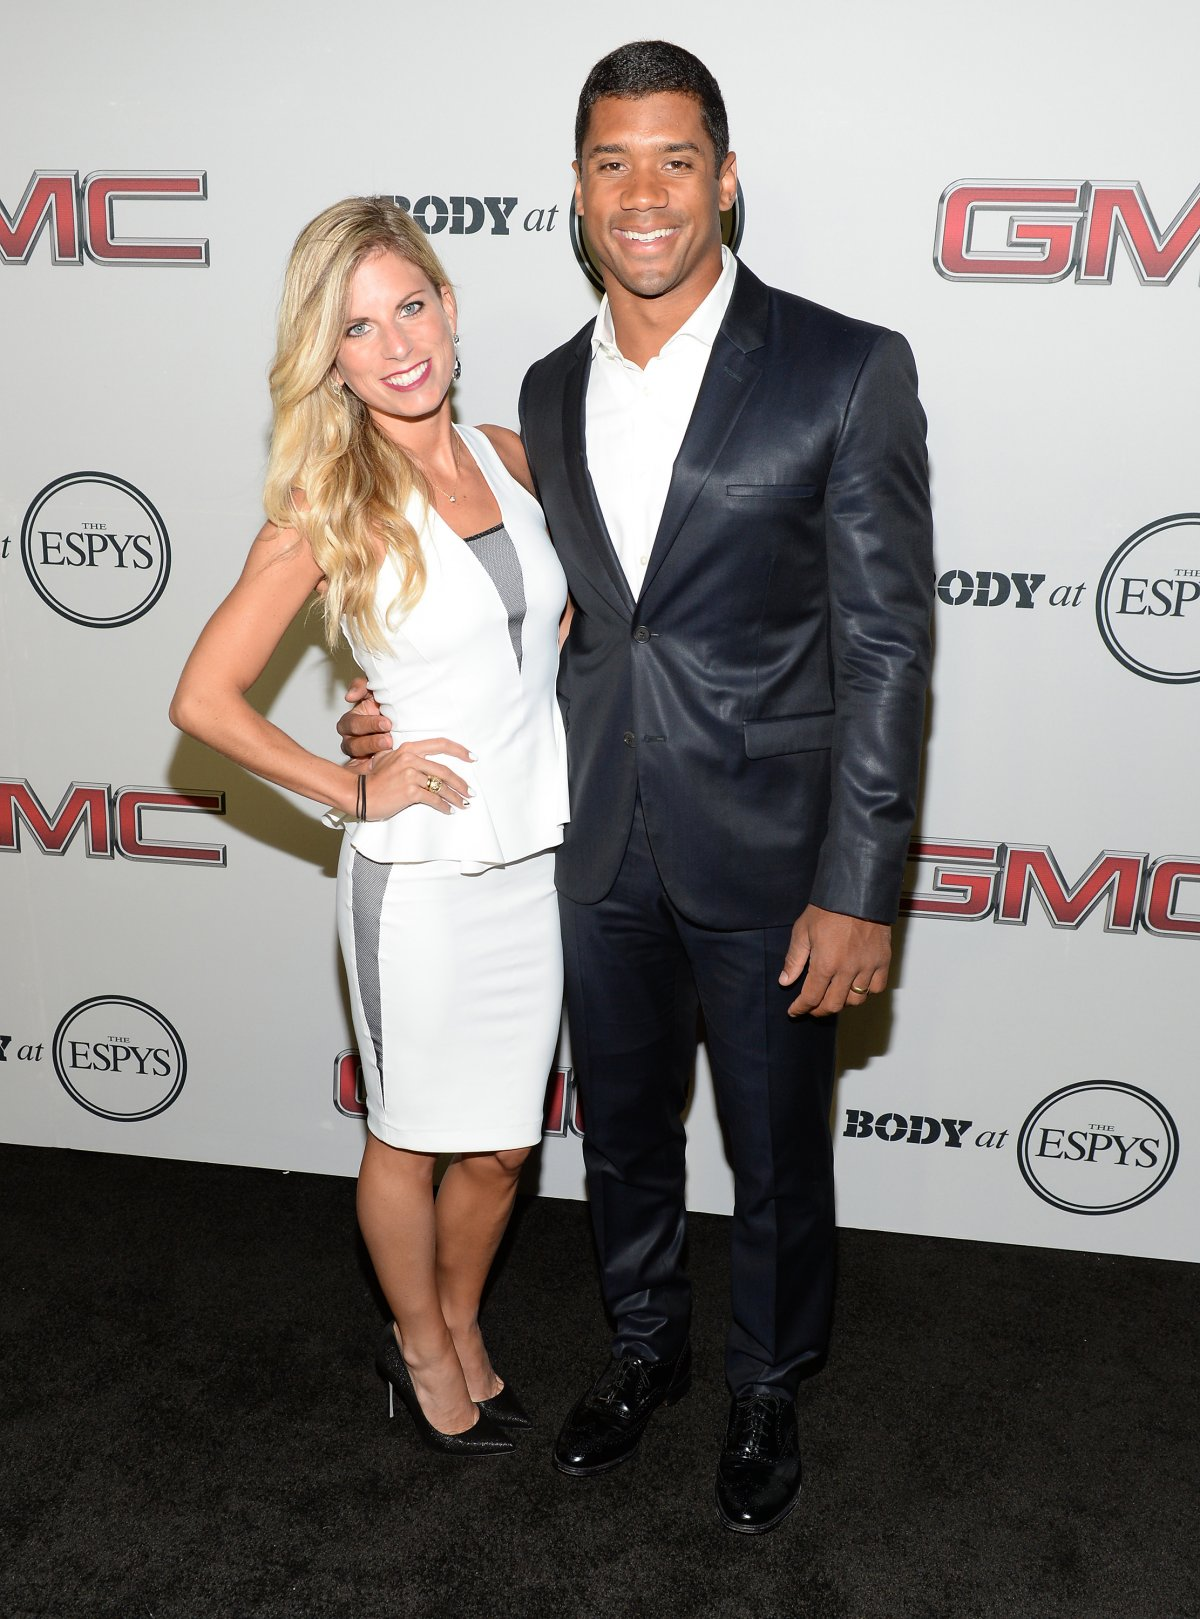 Russell-wilson-suit-shiny-ESPN-2013-Body-Issue-Party